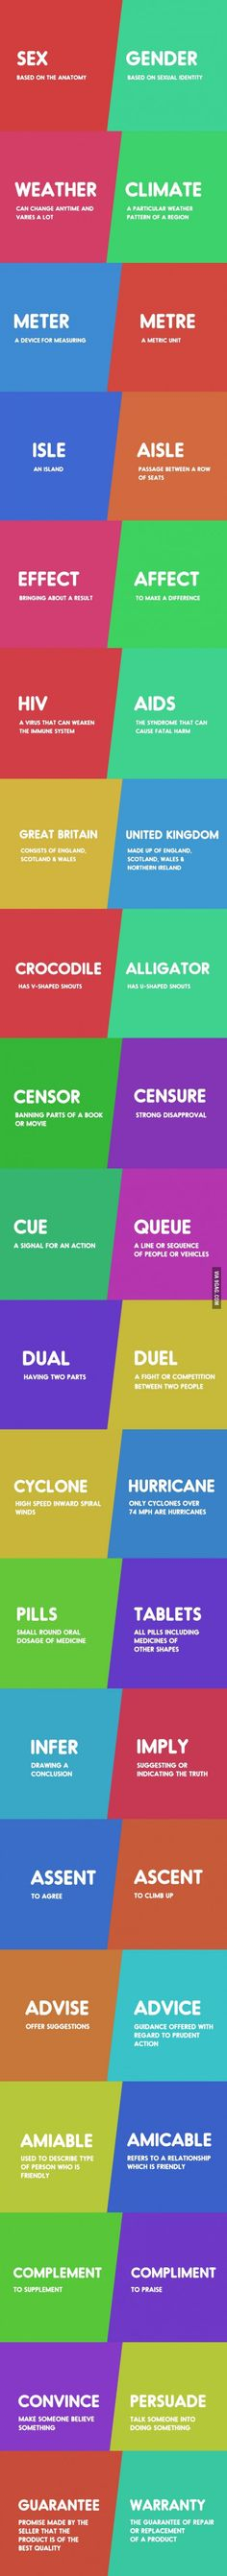 reflexive pronouns | LearnEnglish - British Council